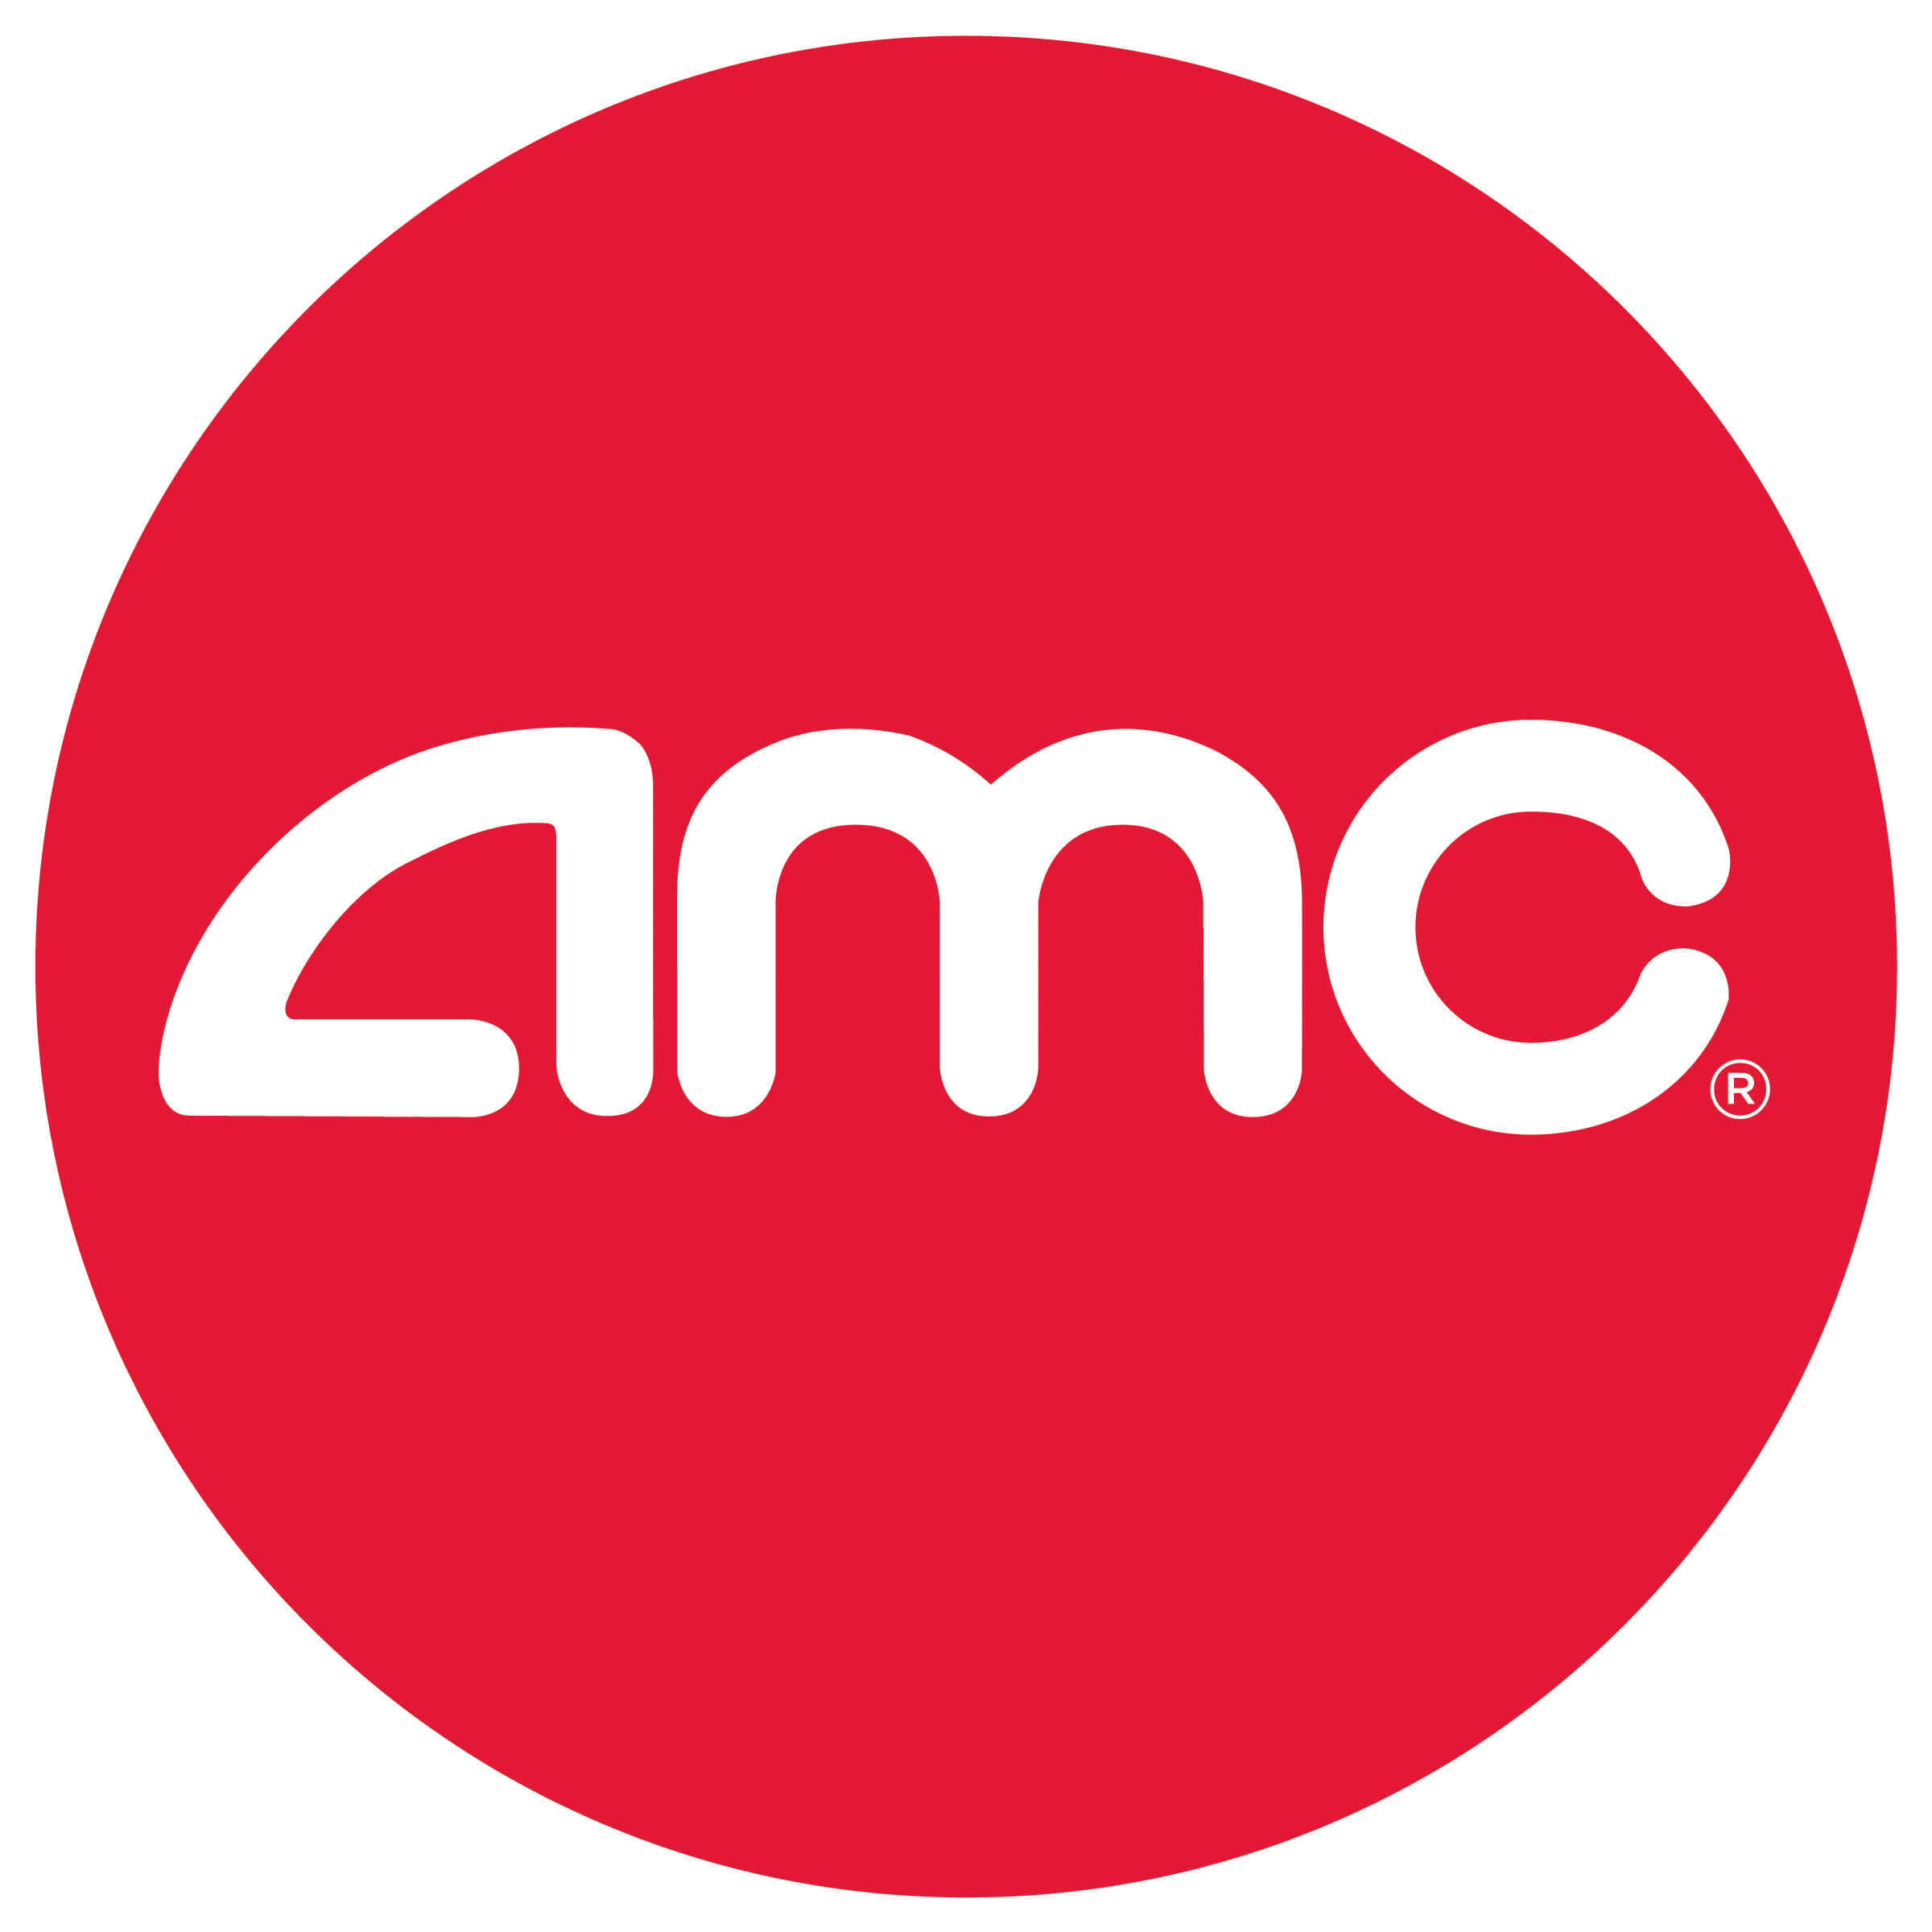 Amc Theatres To Acquire Carmike Cinemas Creating Largest Chain Of